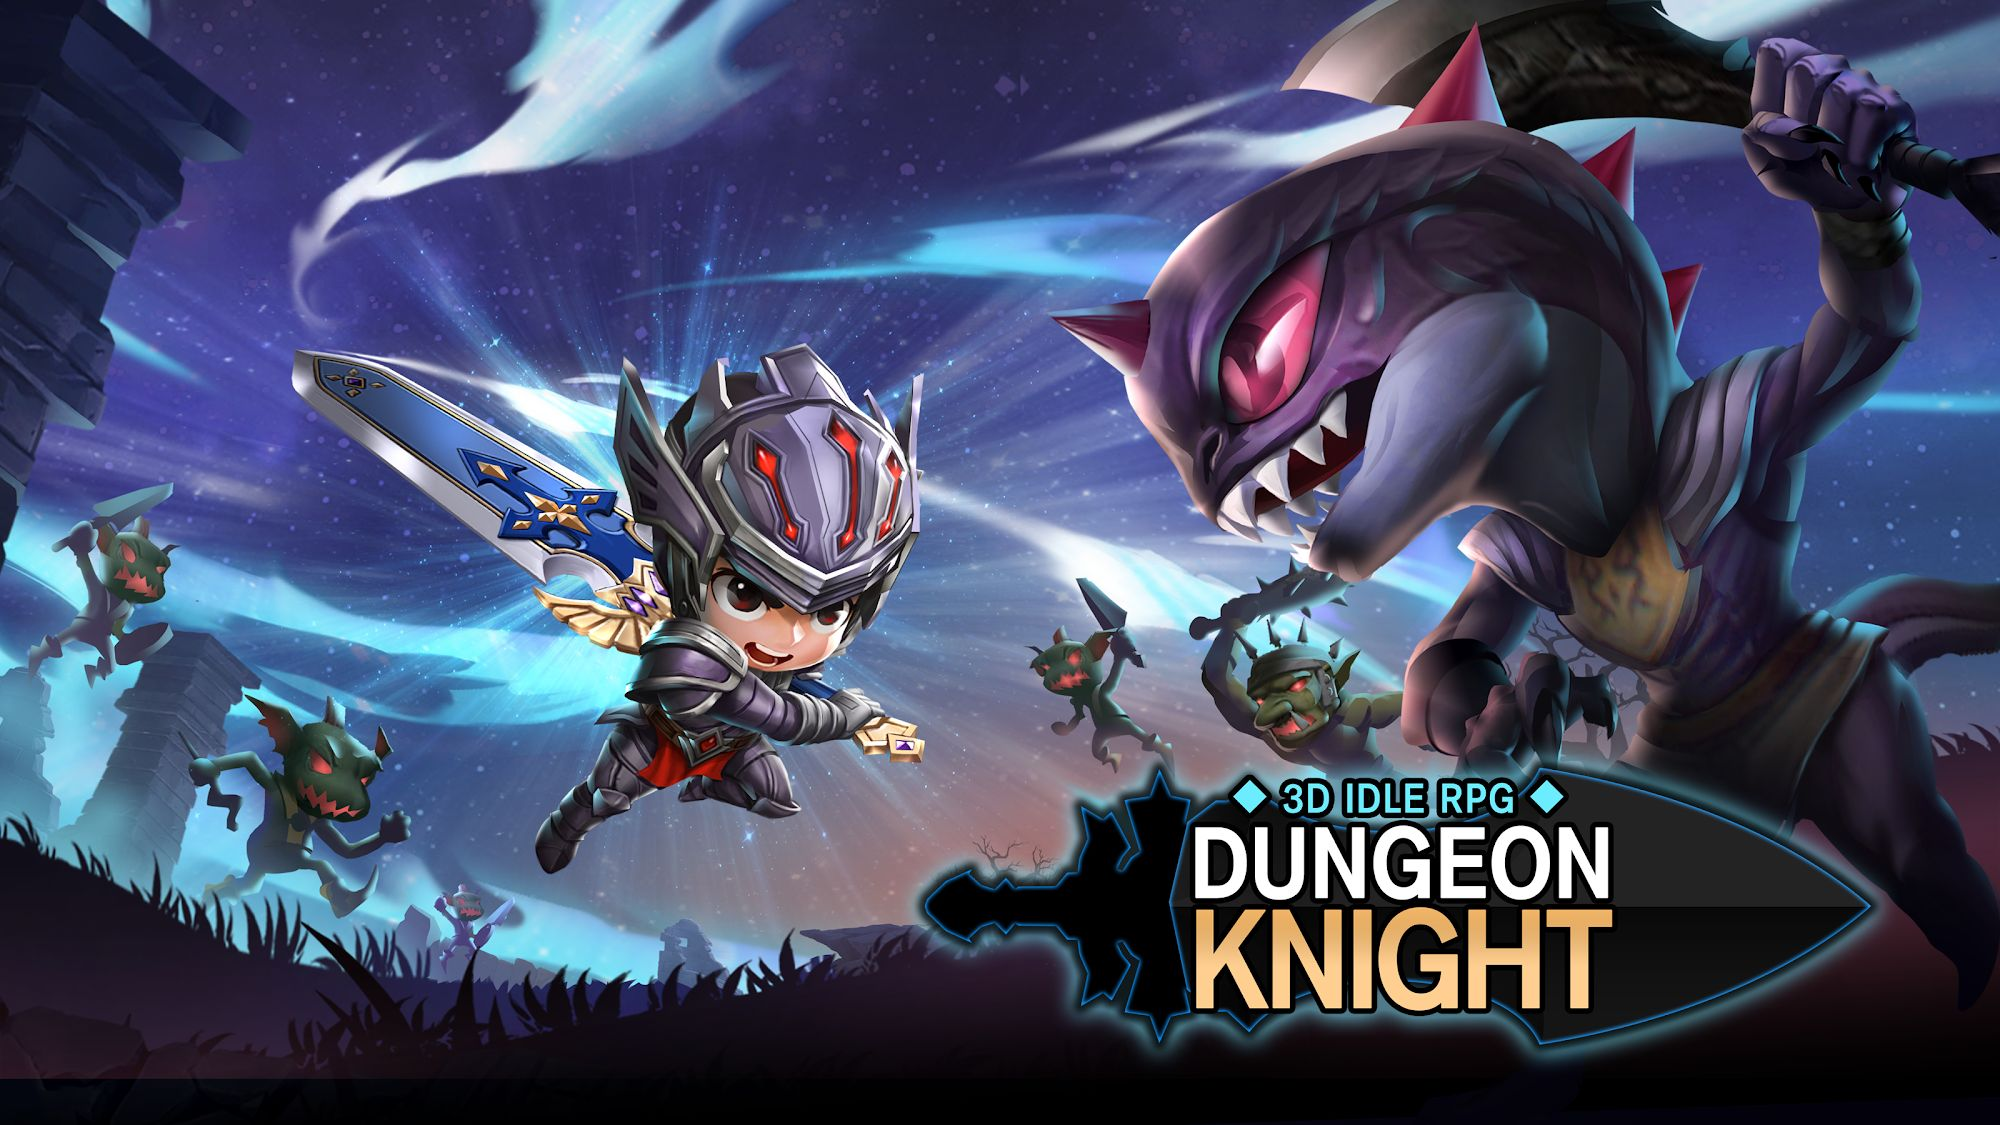 Dungeon Knight: 3D Idle RPG スクリーンショット1